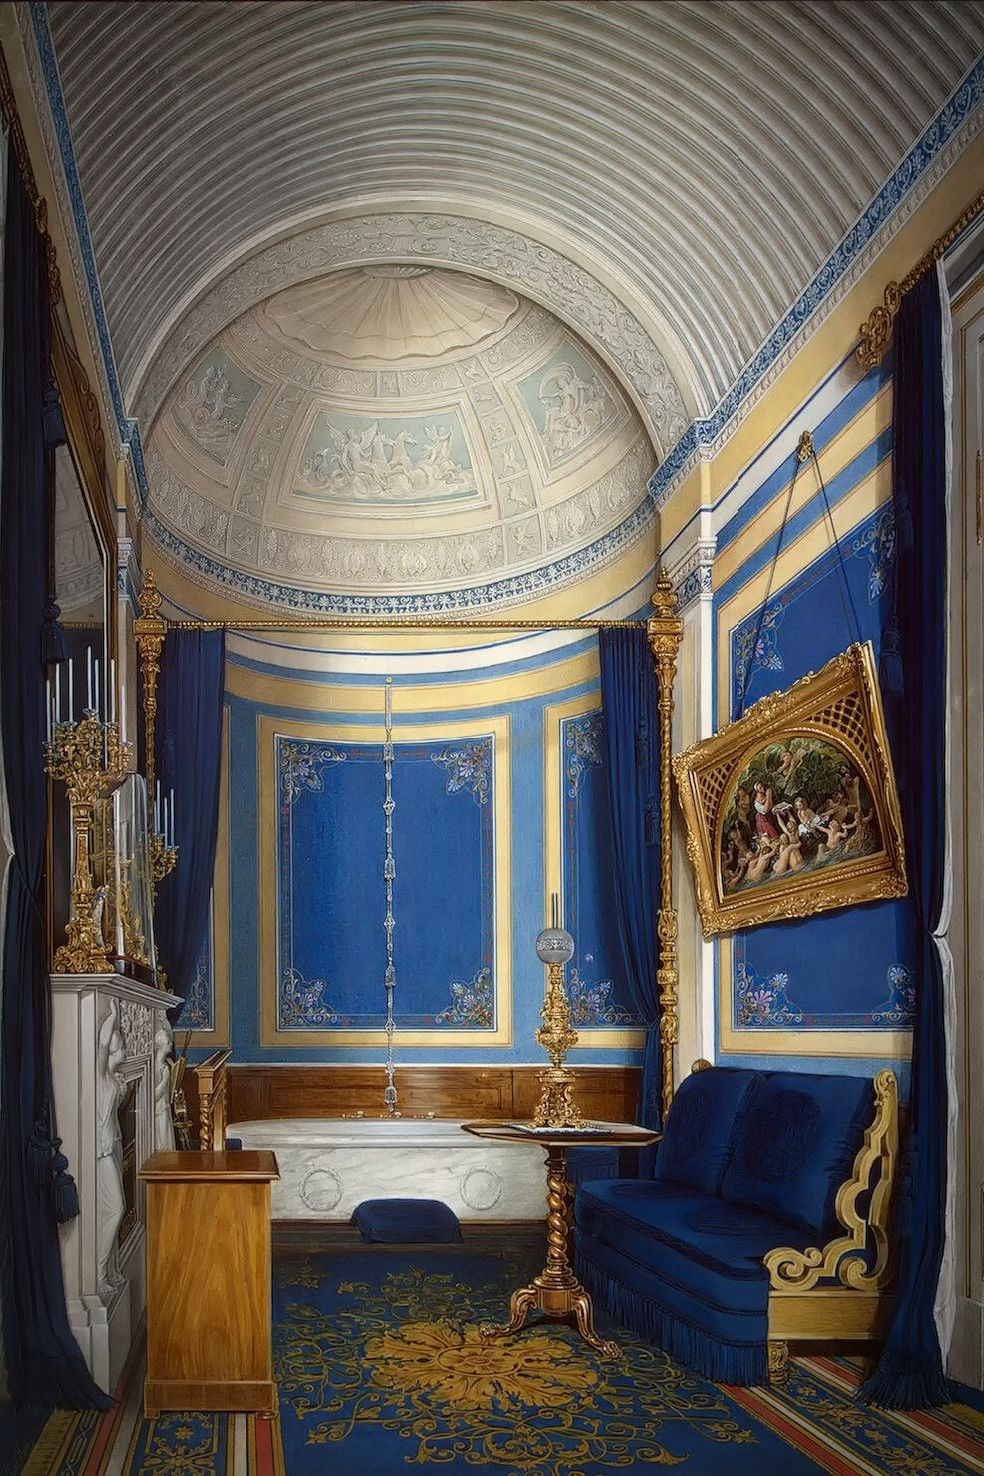 The Bathroom of Grand Princess Maria Alexandrovna, 1850